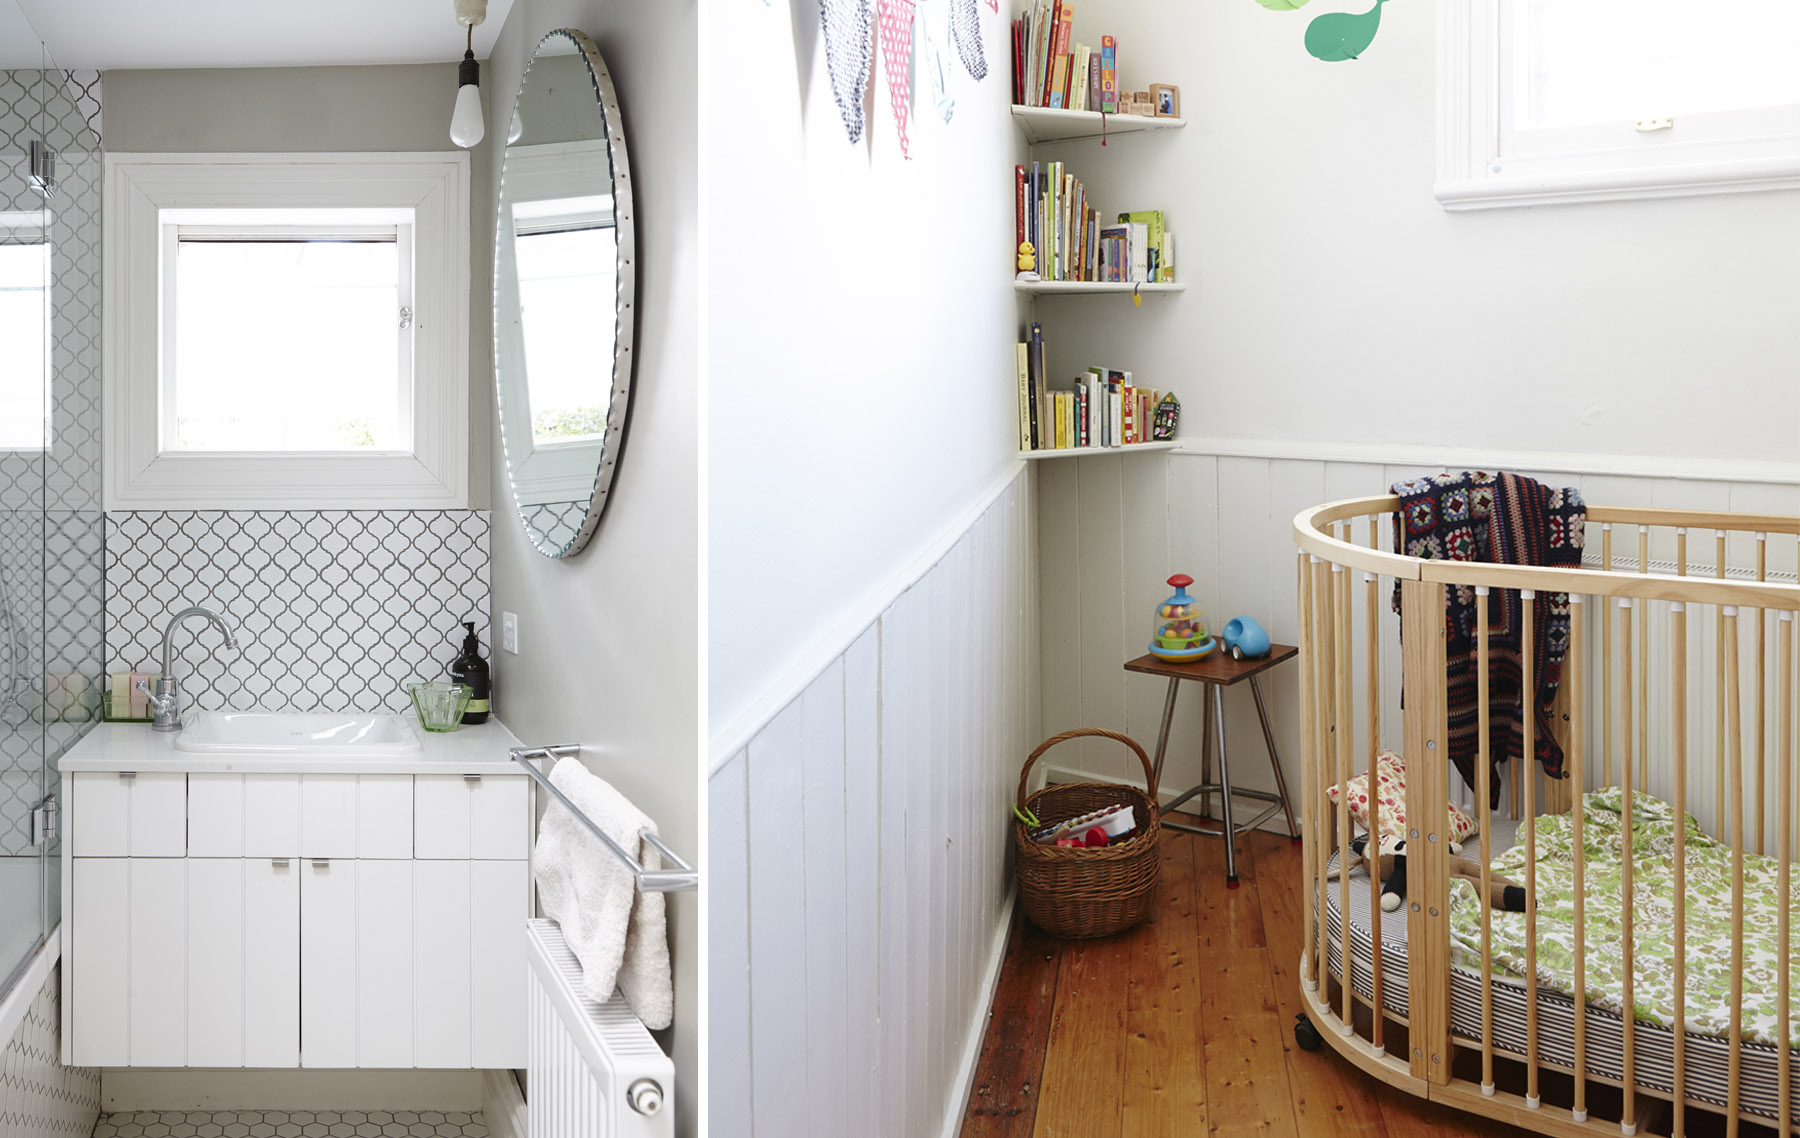 A teeny-tiny bathroom/ laundry and toilet were reconfigured by Nicola, making them functional despite the spatial challenges, graphic detail in the vanity and tiles adding interest. Trims and mouldings were painted white to contrast with the timber floors and provide cohesion.